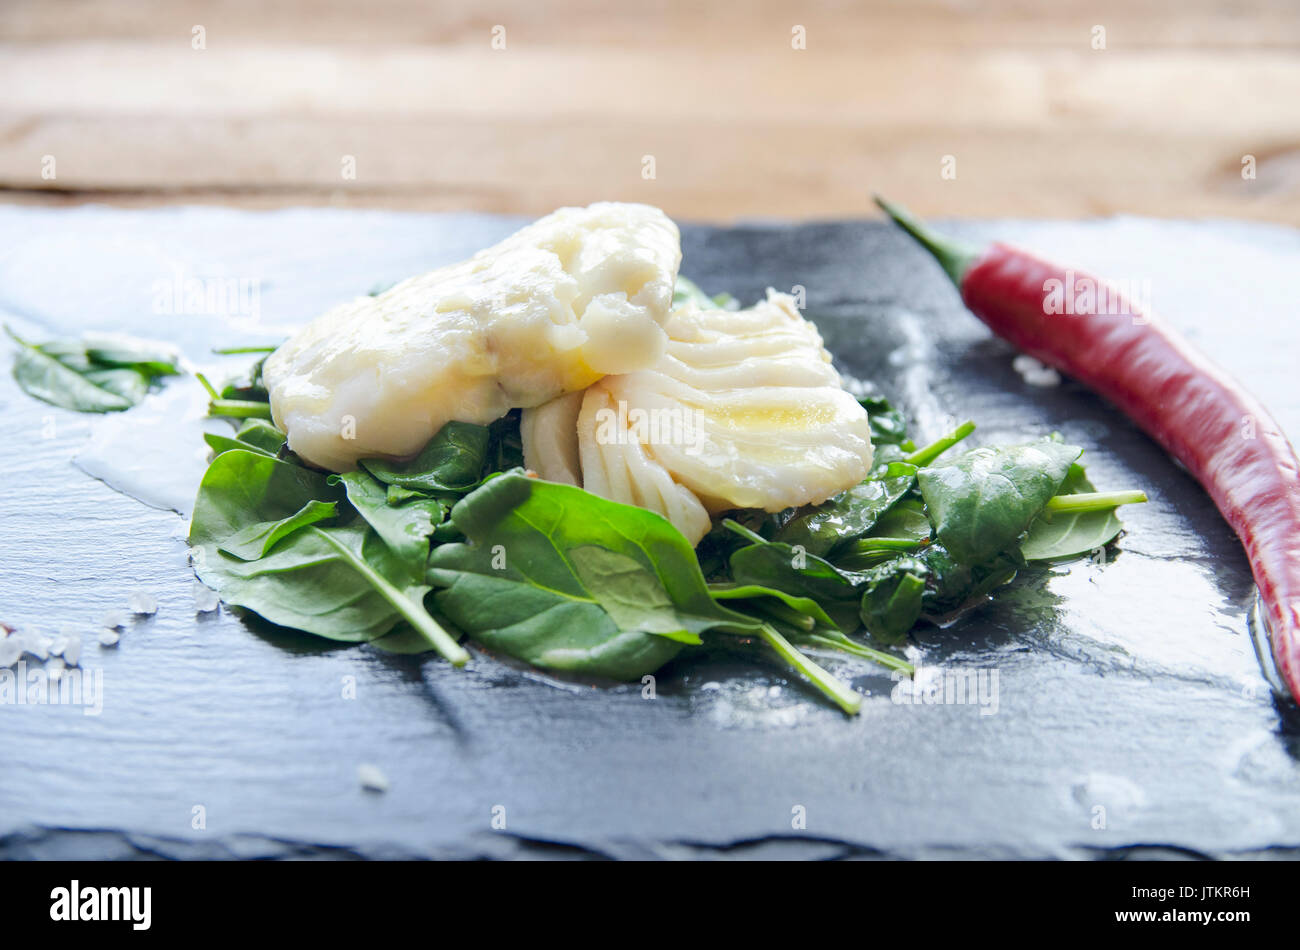 White fish fillet with herbs and chili on fried spinach. Gray background. - Stock Image